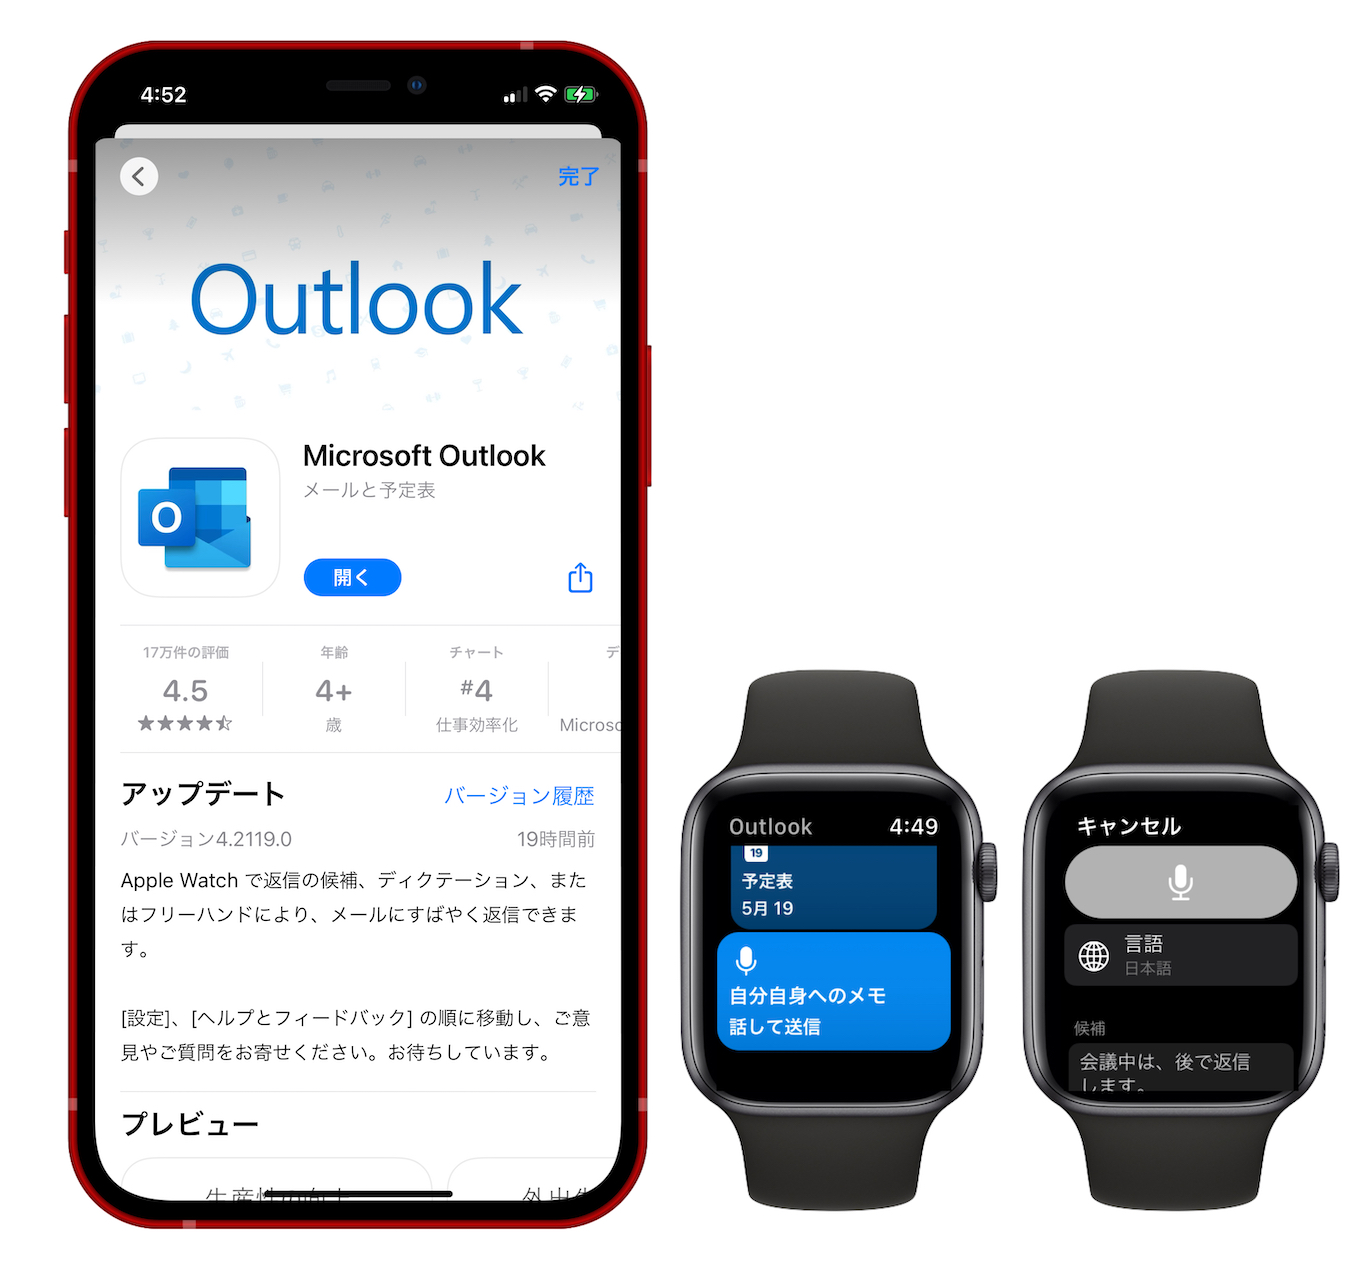 Outlook for iOSとApple Watch